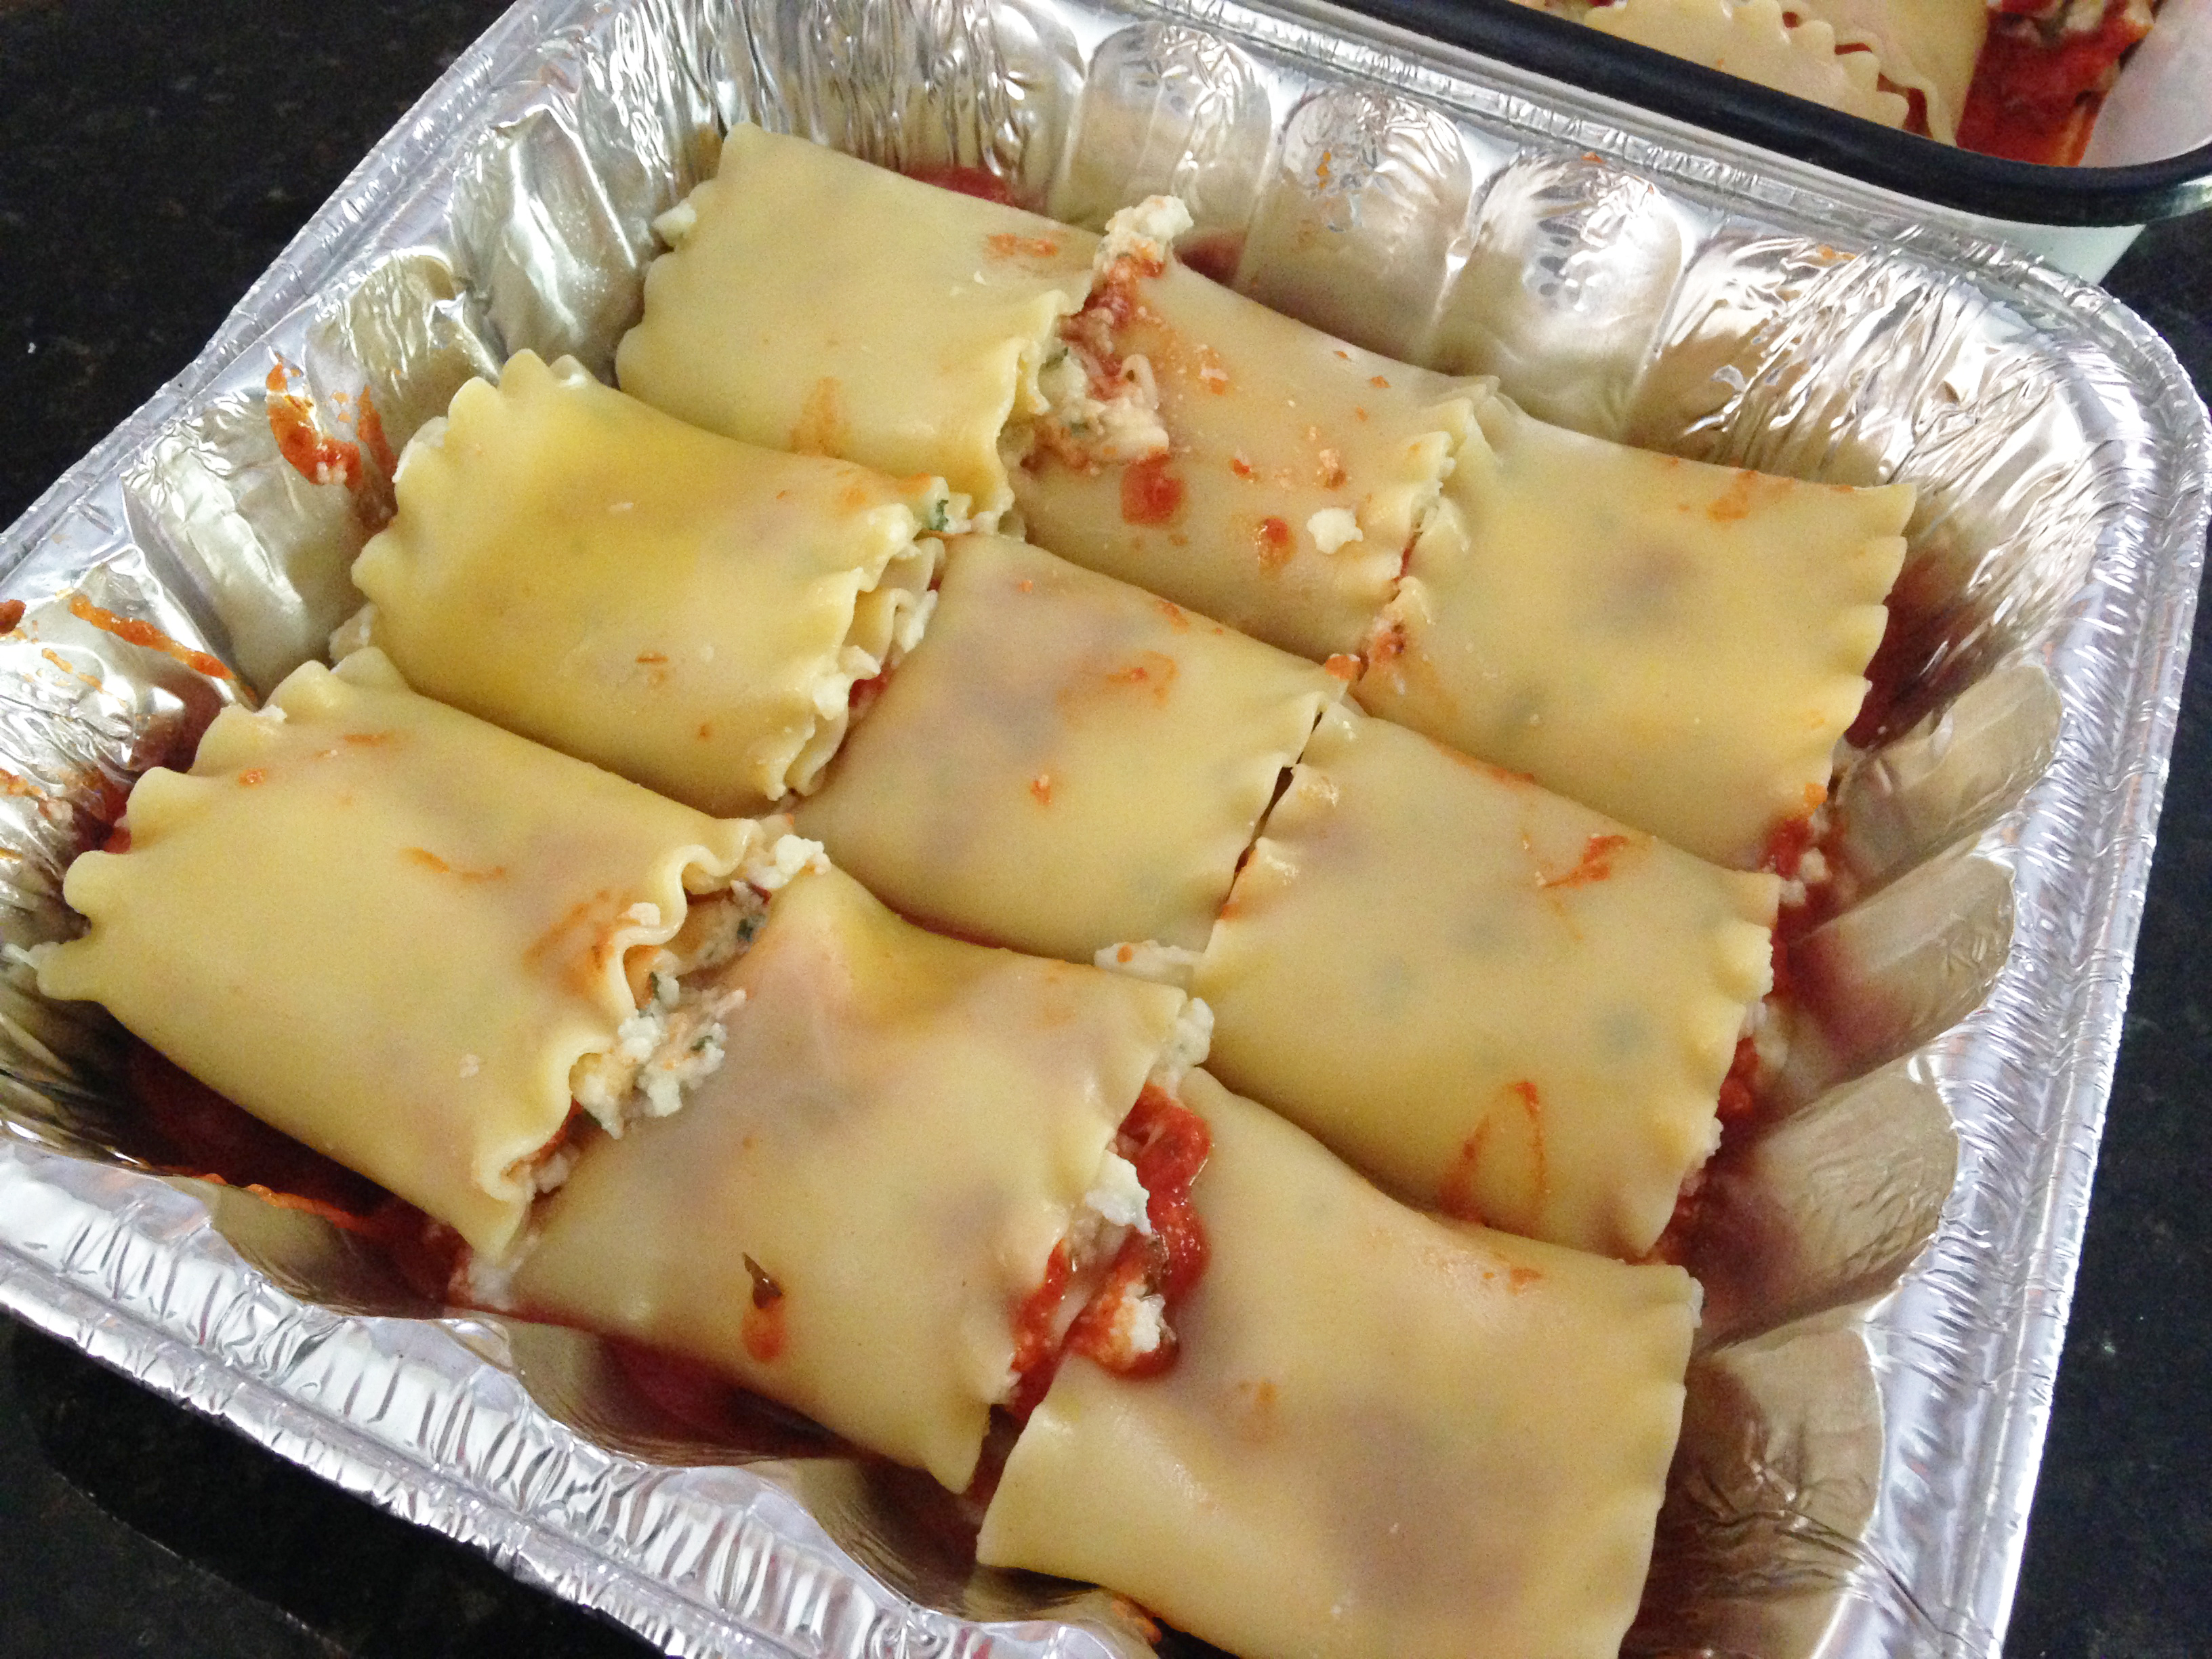 Freezer Friendly Lasagna Roll Up Recipe The Family Freezer